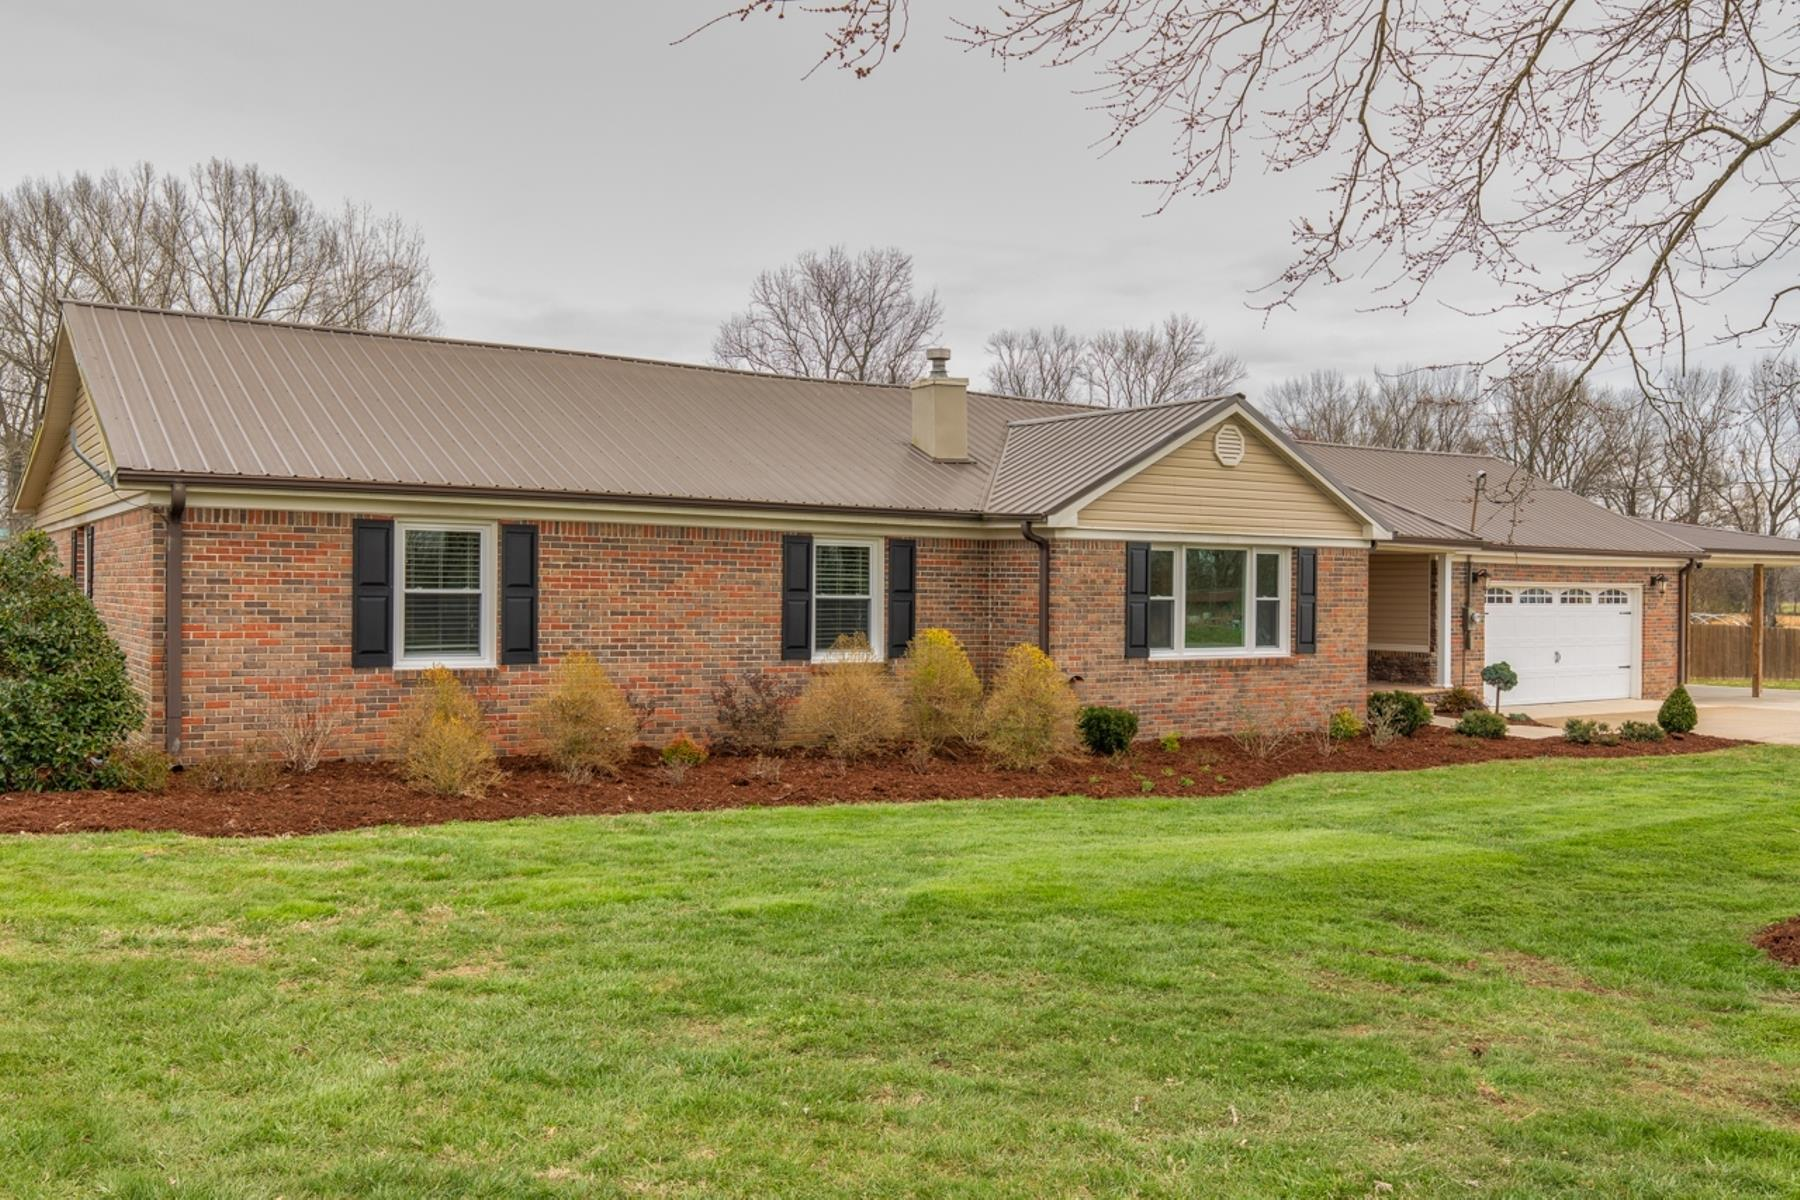 175 Bellview Rd, Taft, TN 38488 - Taft, TN real estate listing